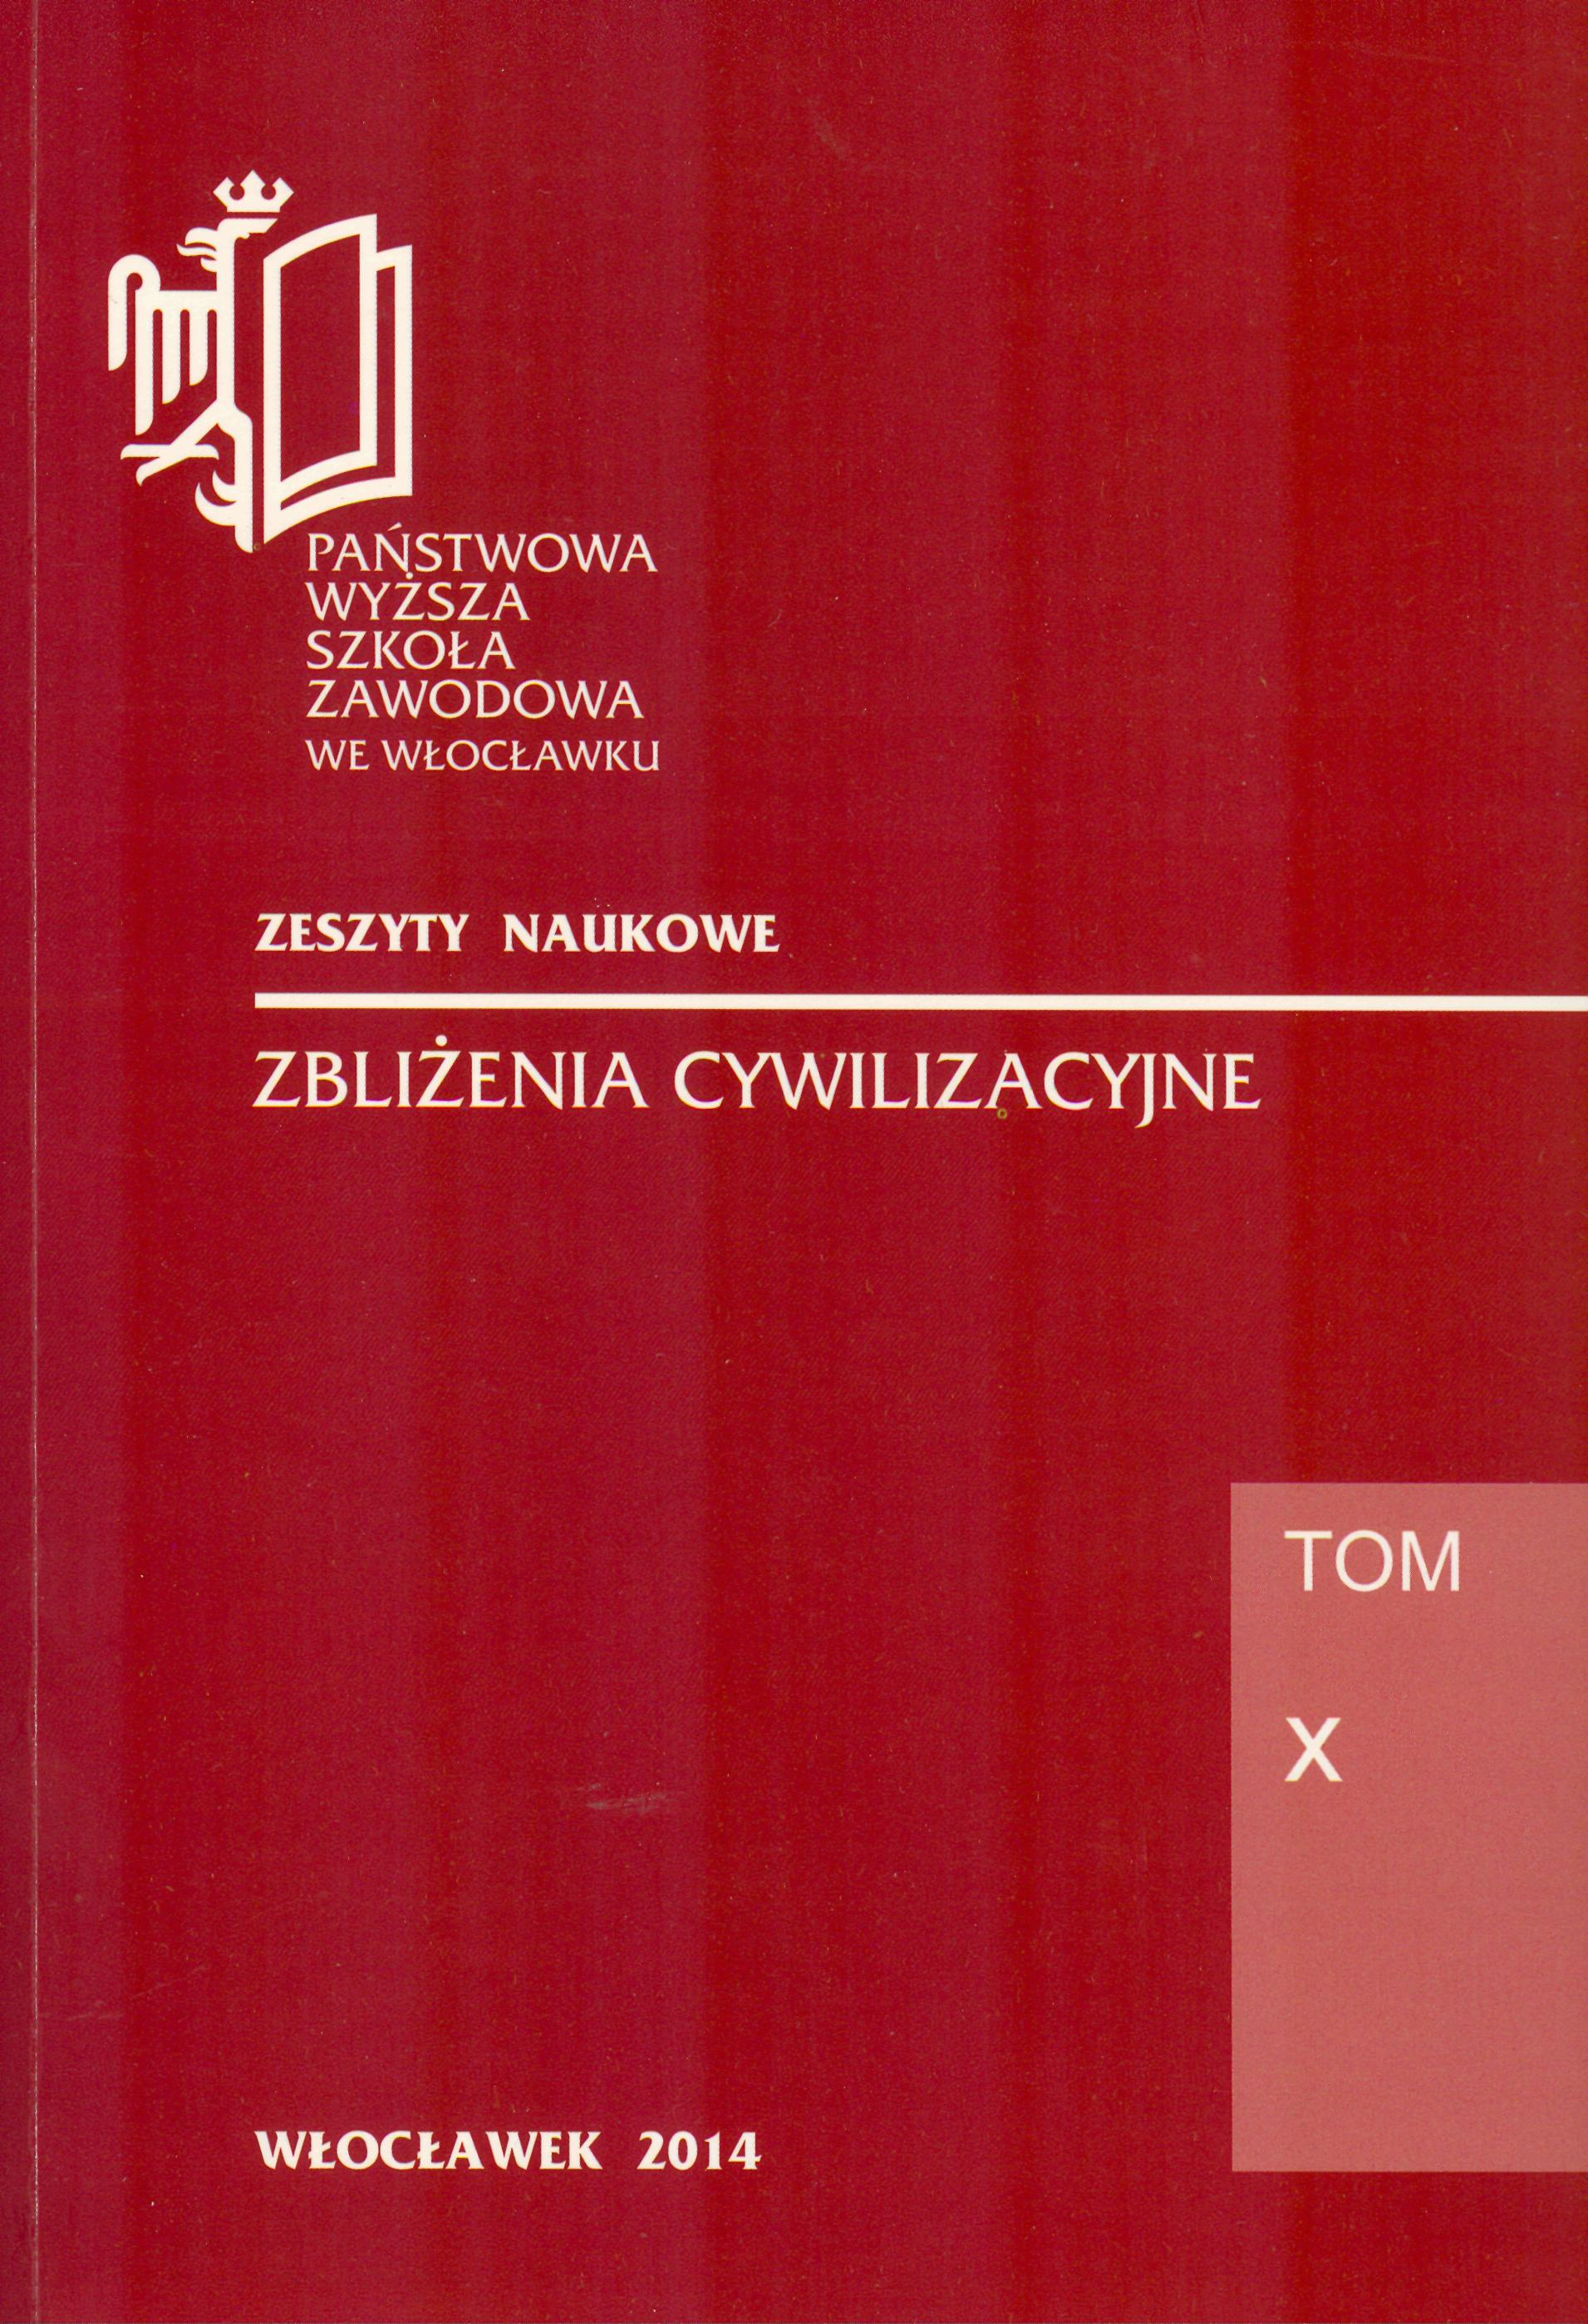 images/books/201505060940240.okładka.jpg?category_id=8&product_id=107